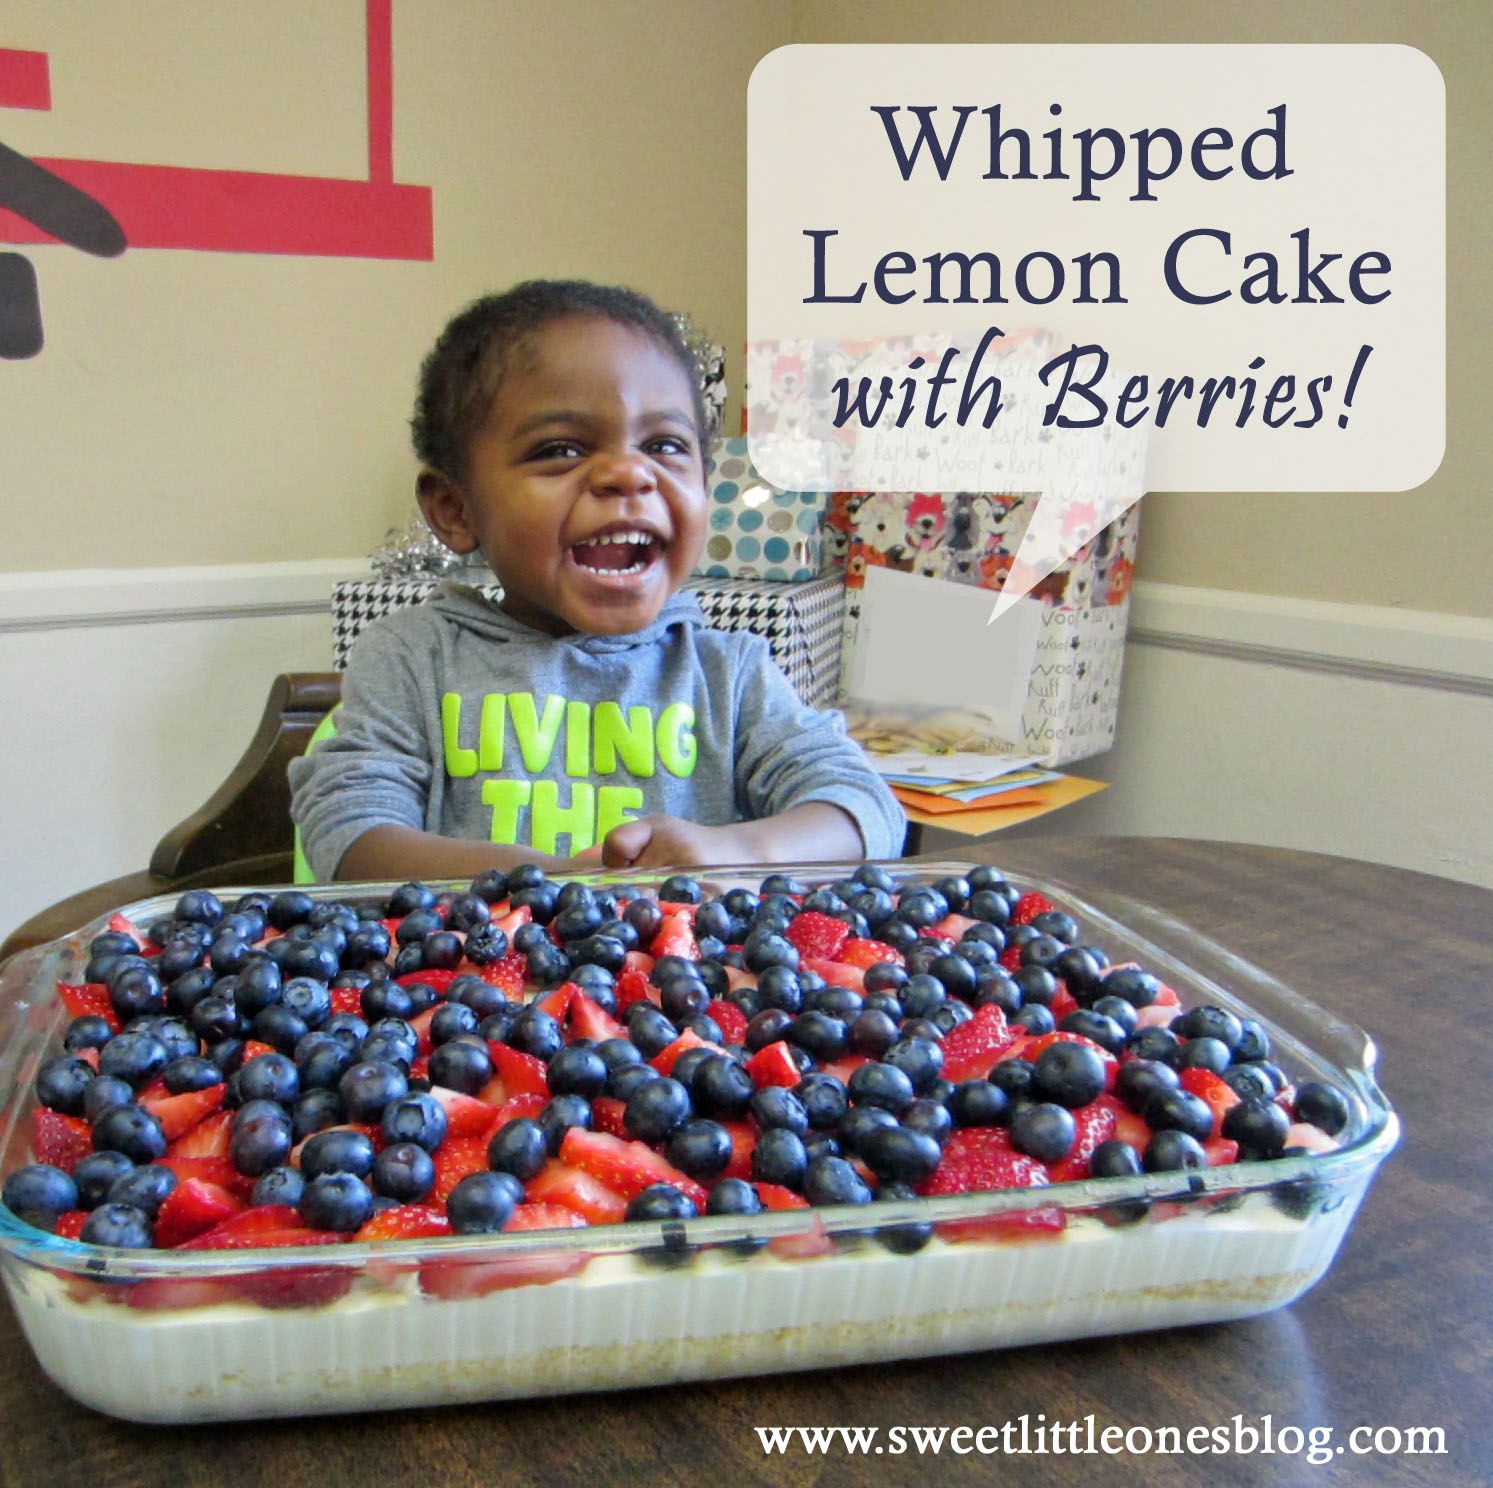 Whipped Lemon Cake with Berries Recipe - www.sweetlittleonesblog.com